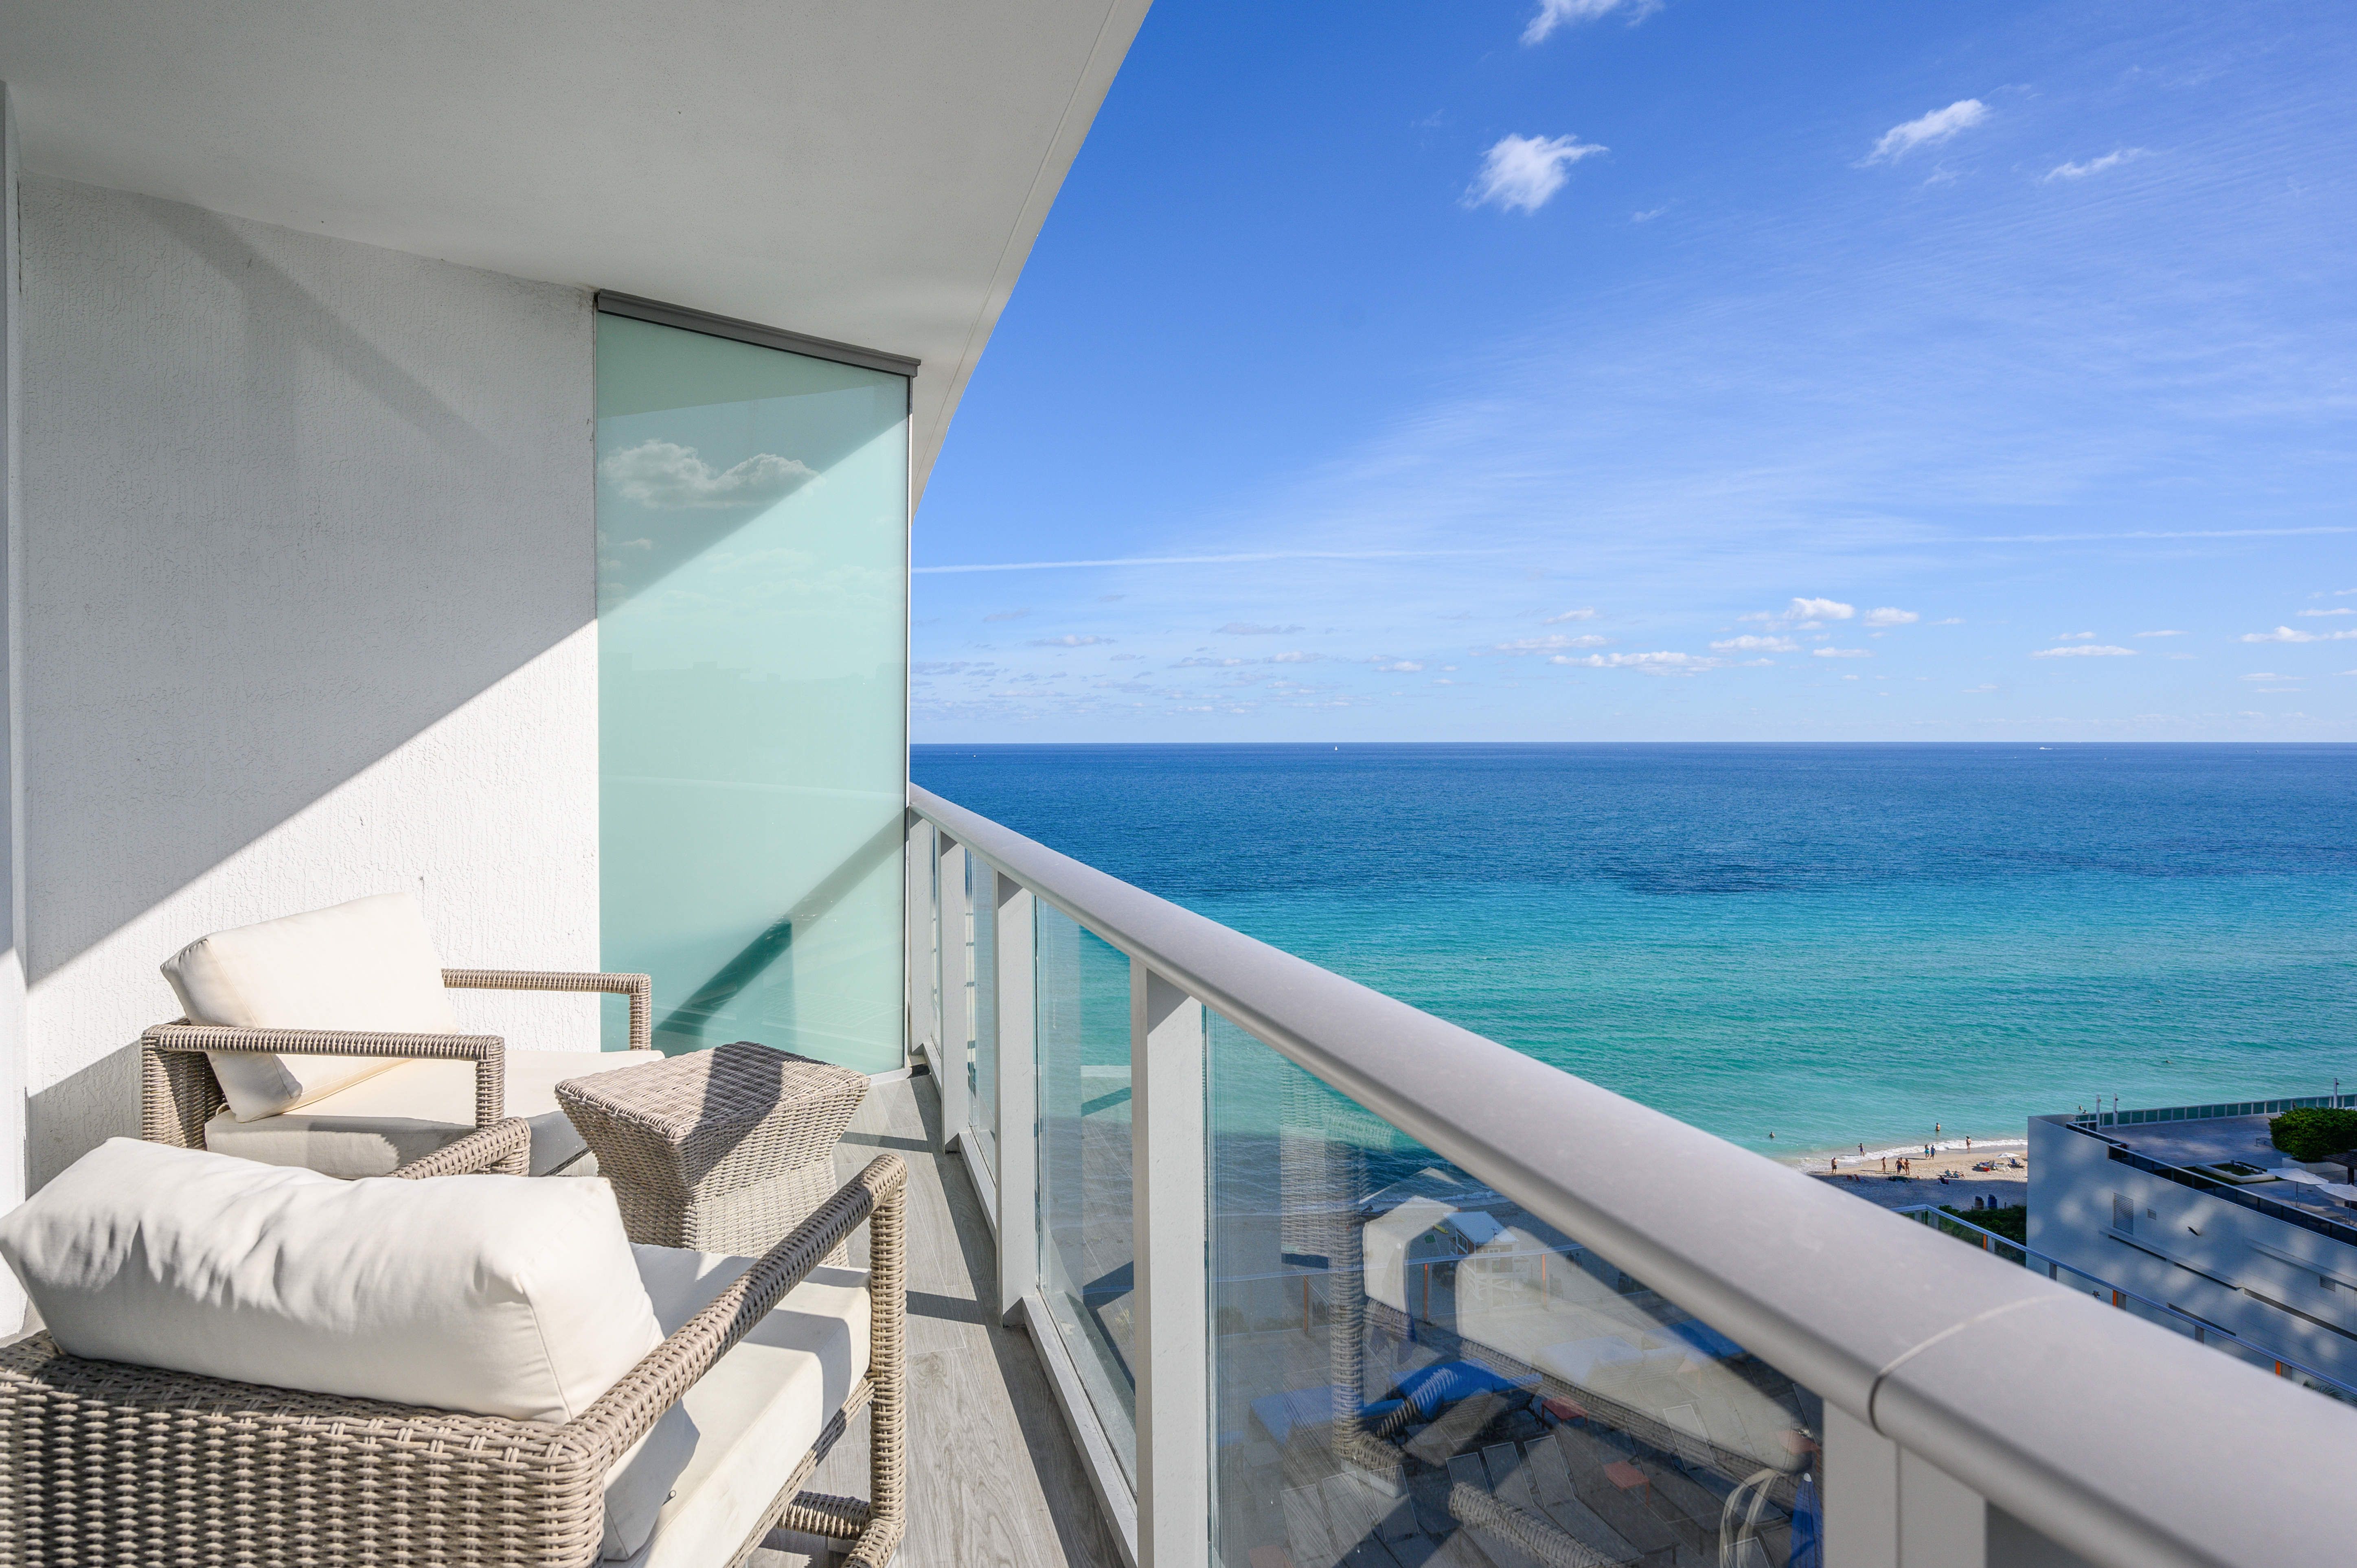 Hollywood FL Vacation Rental Welcome to Hyde